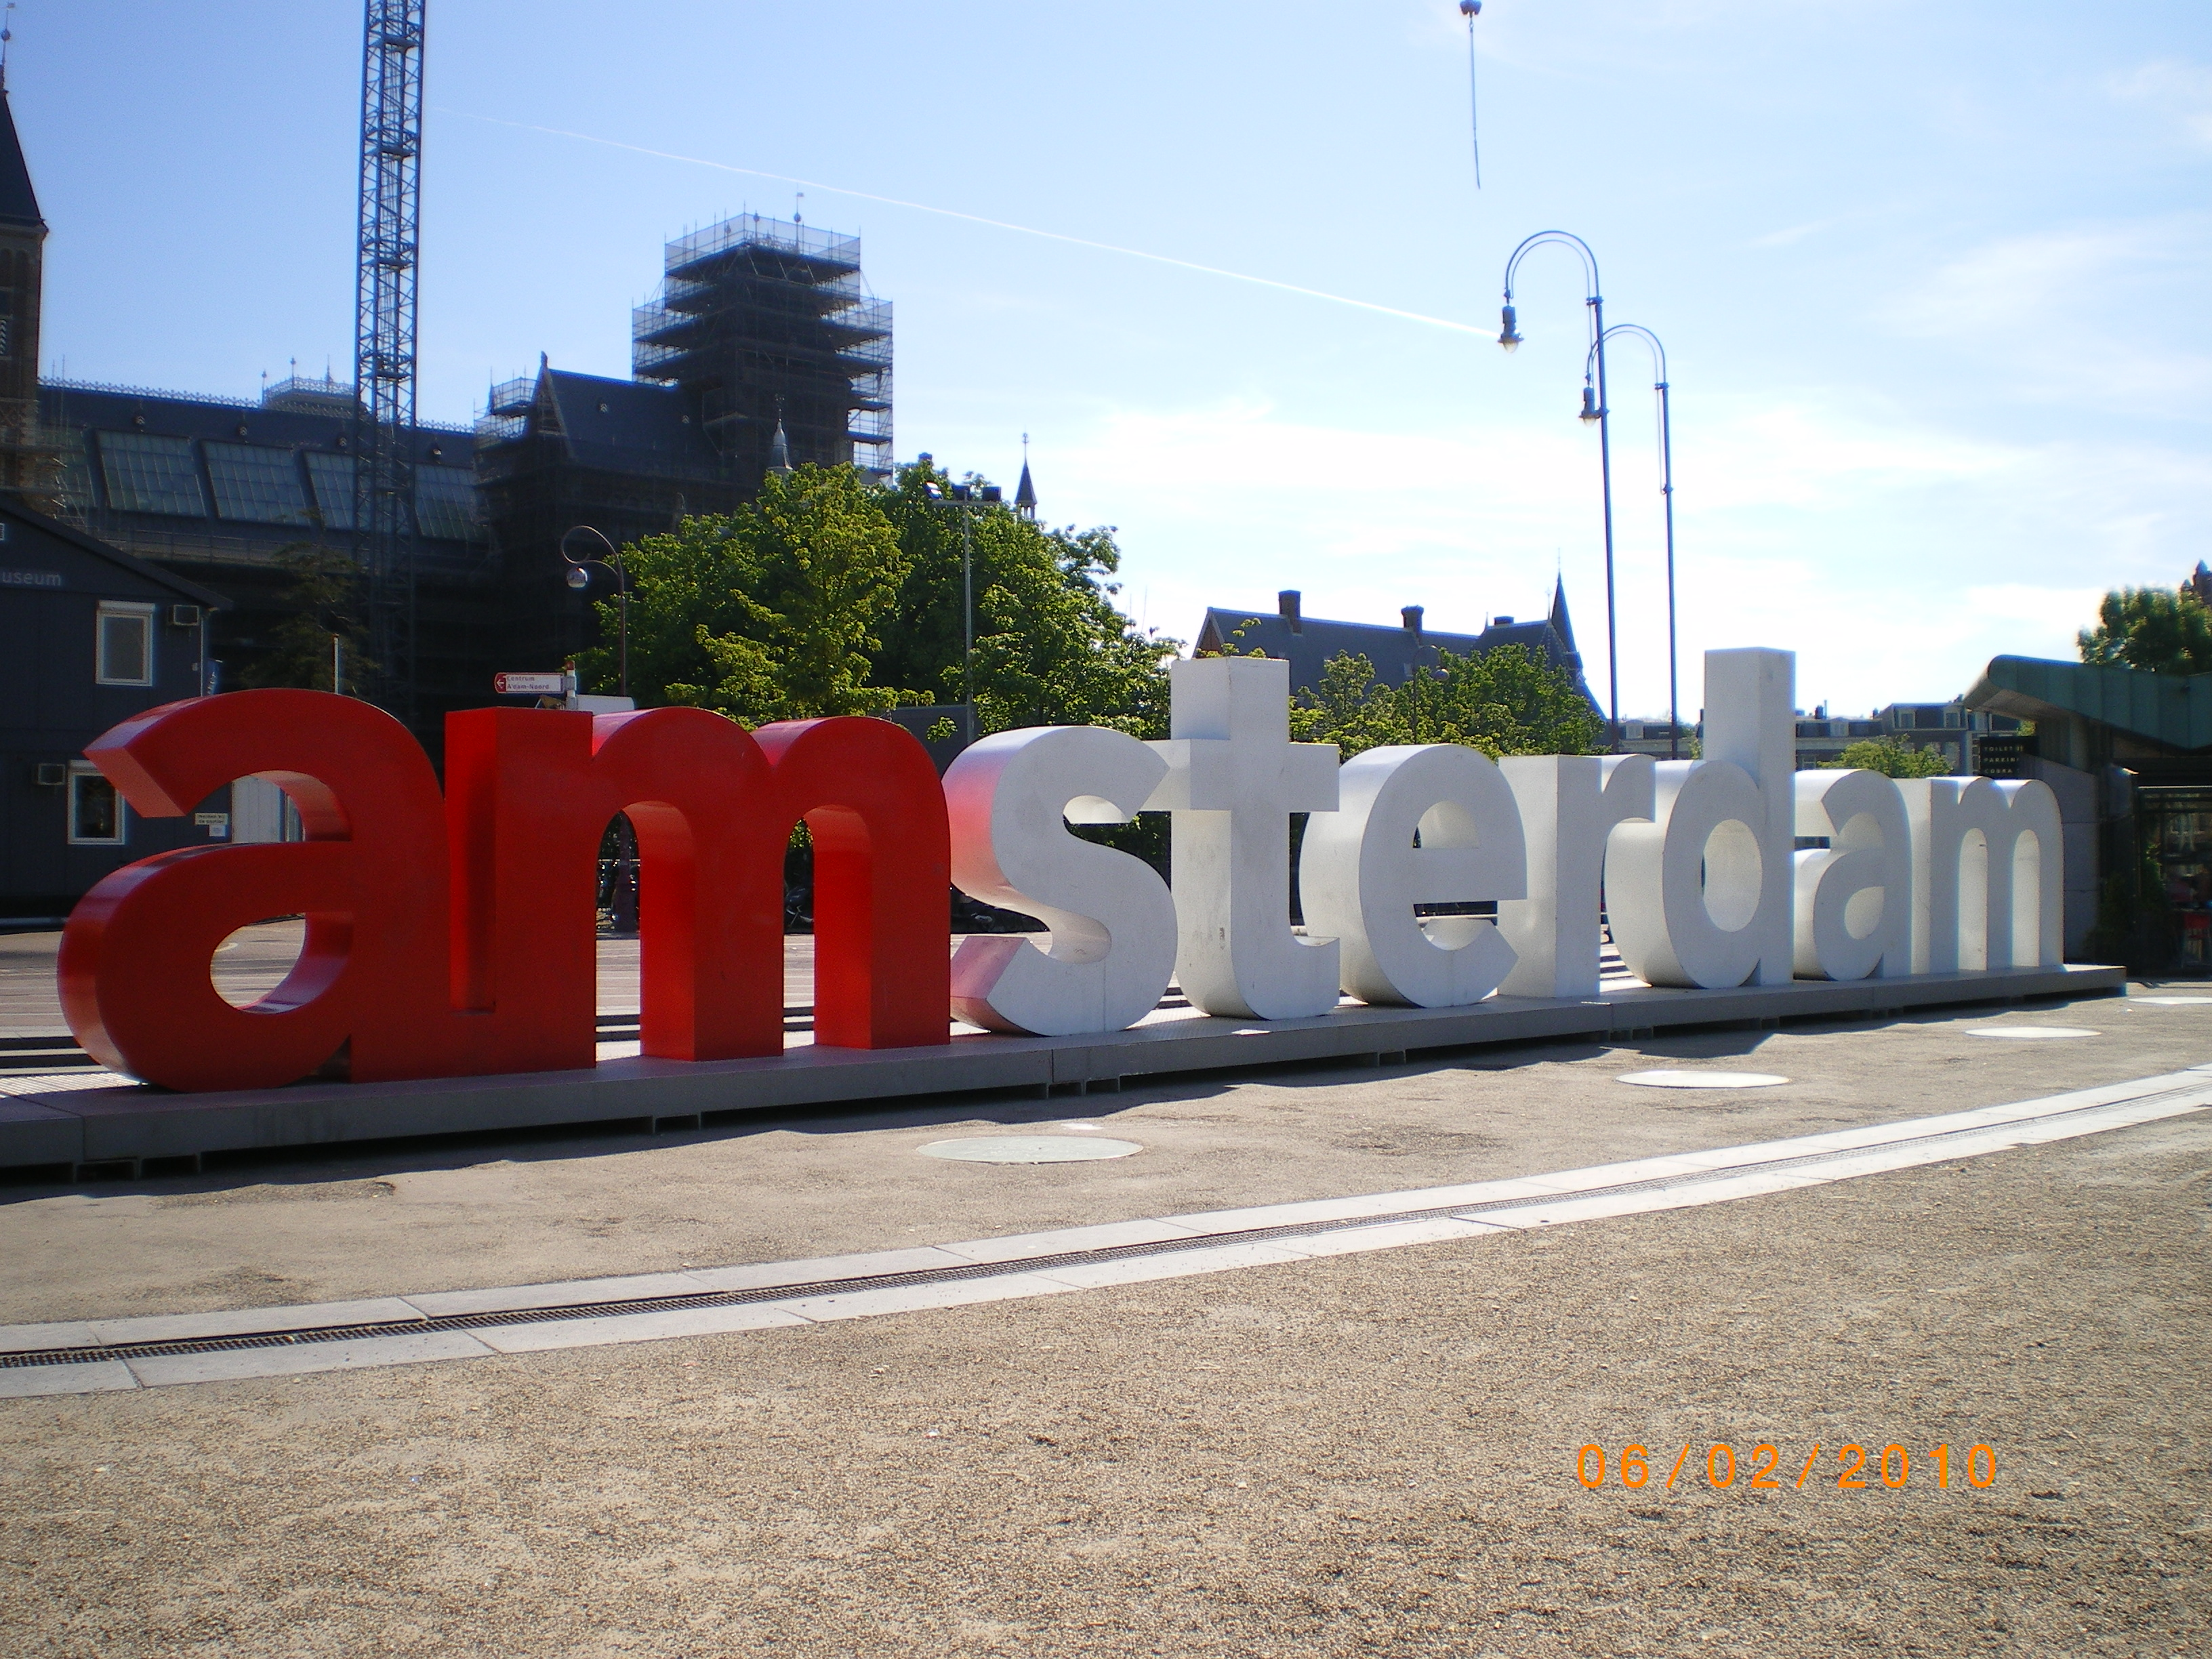 The I amsterdam sign outside the Rijks.